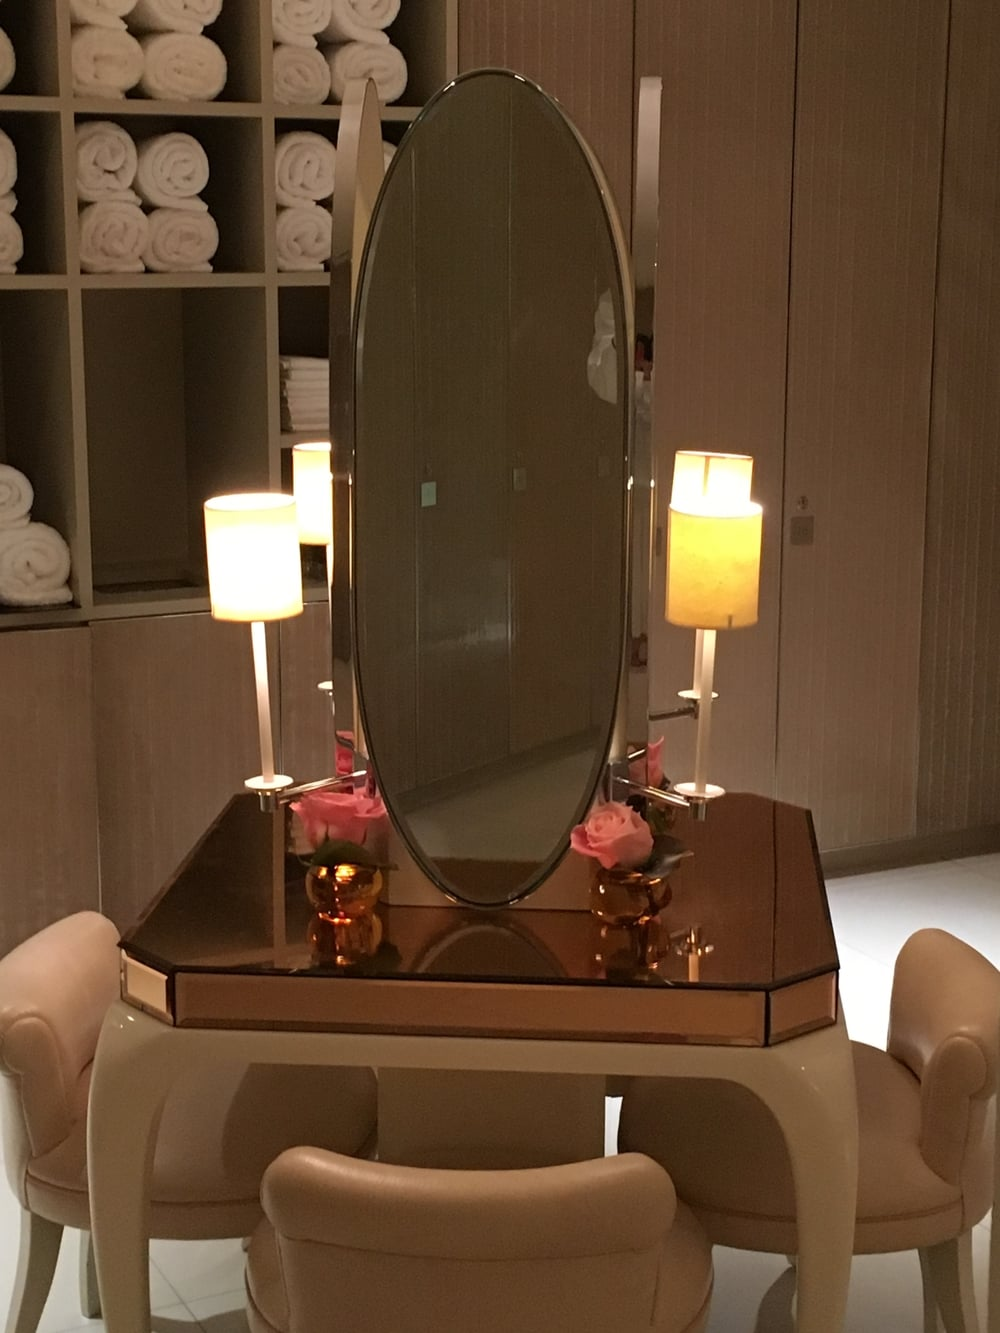 Changing room dressing table